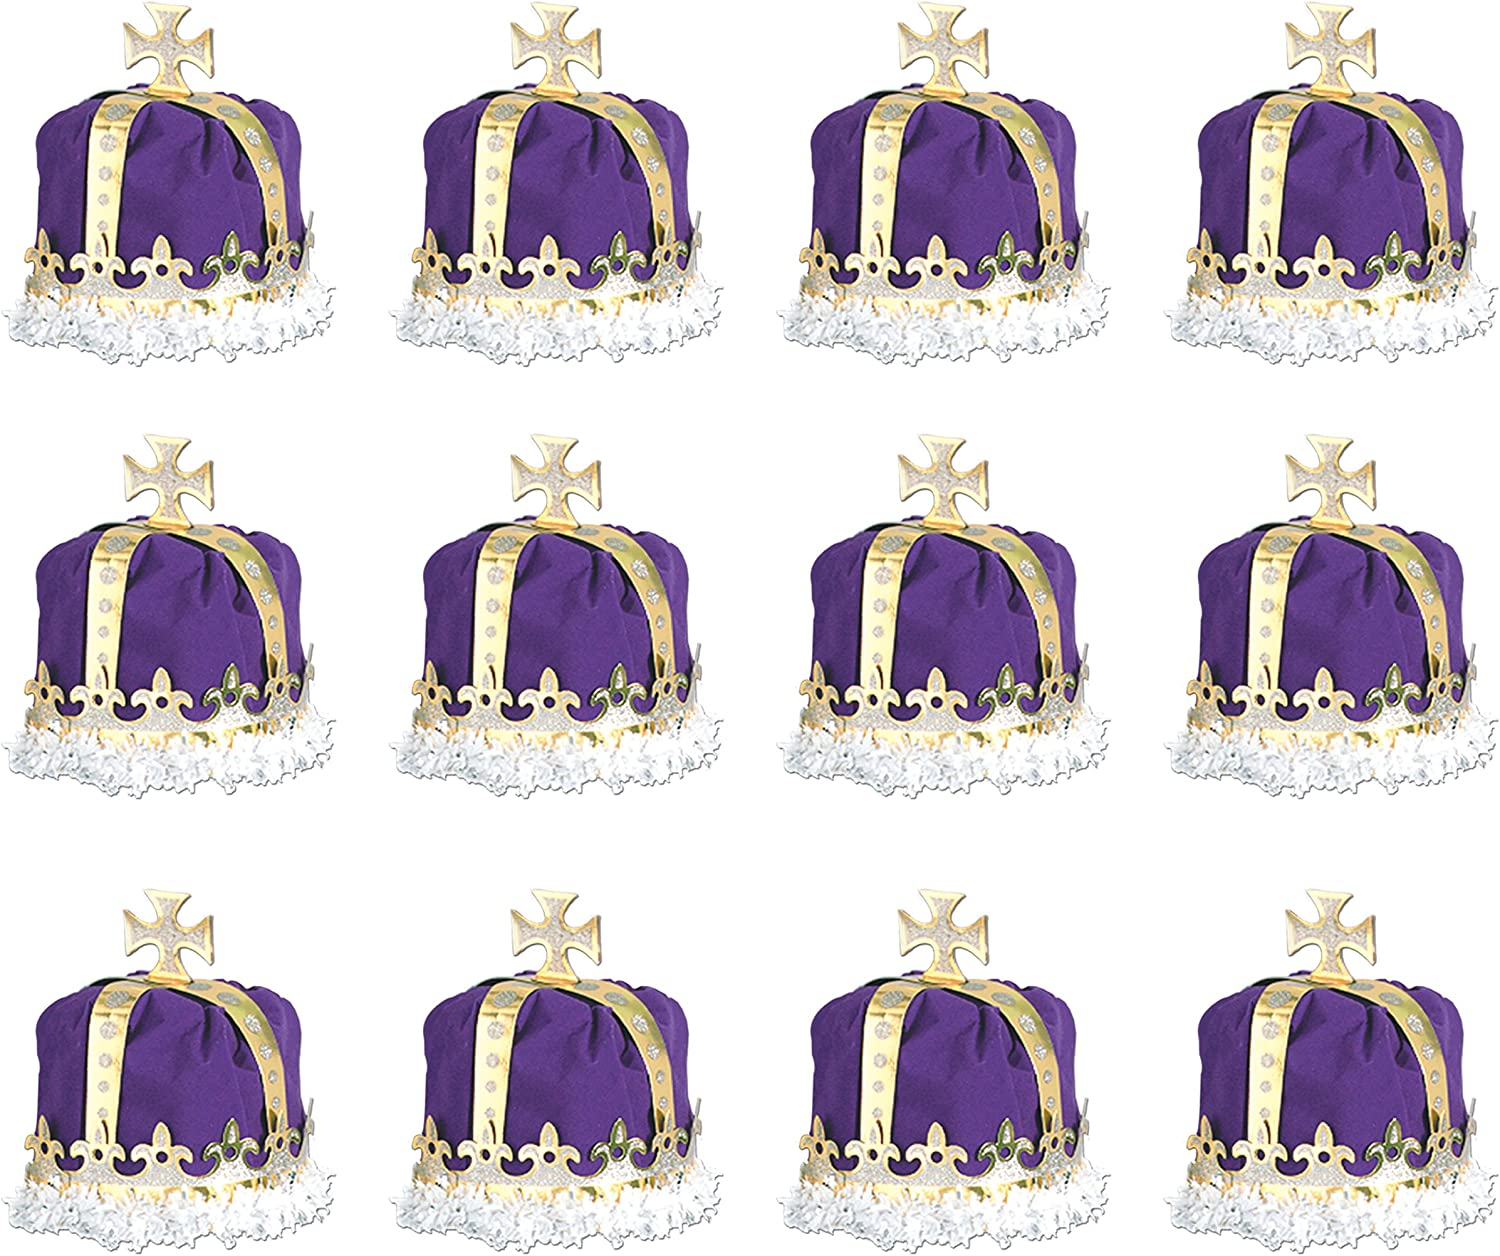 Beistle 66109-PL 12-Pack Royal King's Crown, Purple